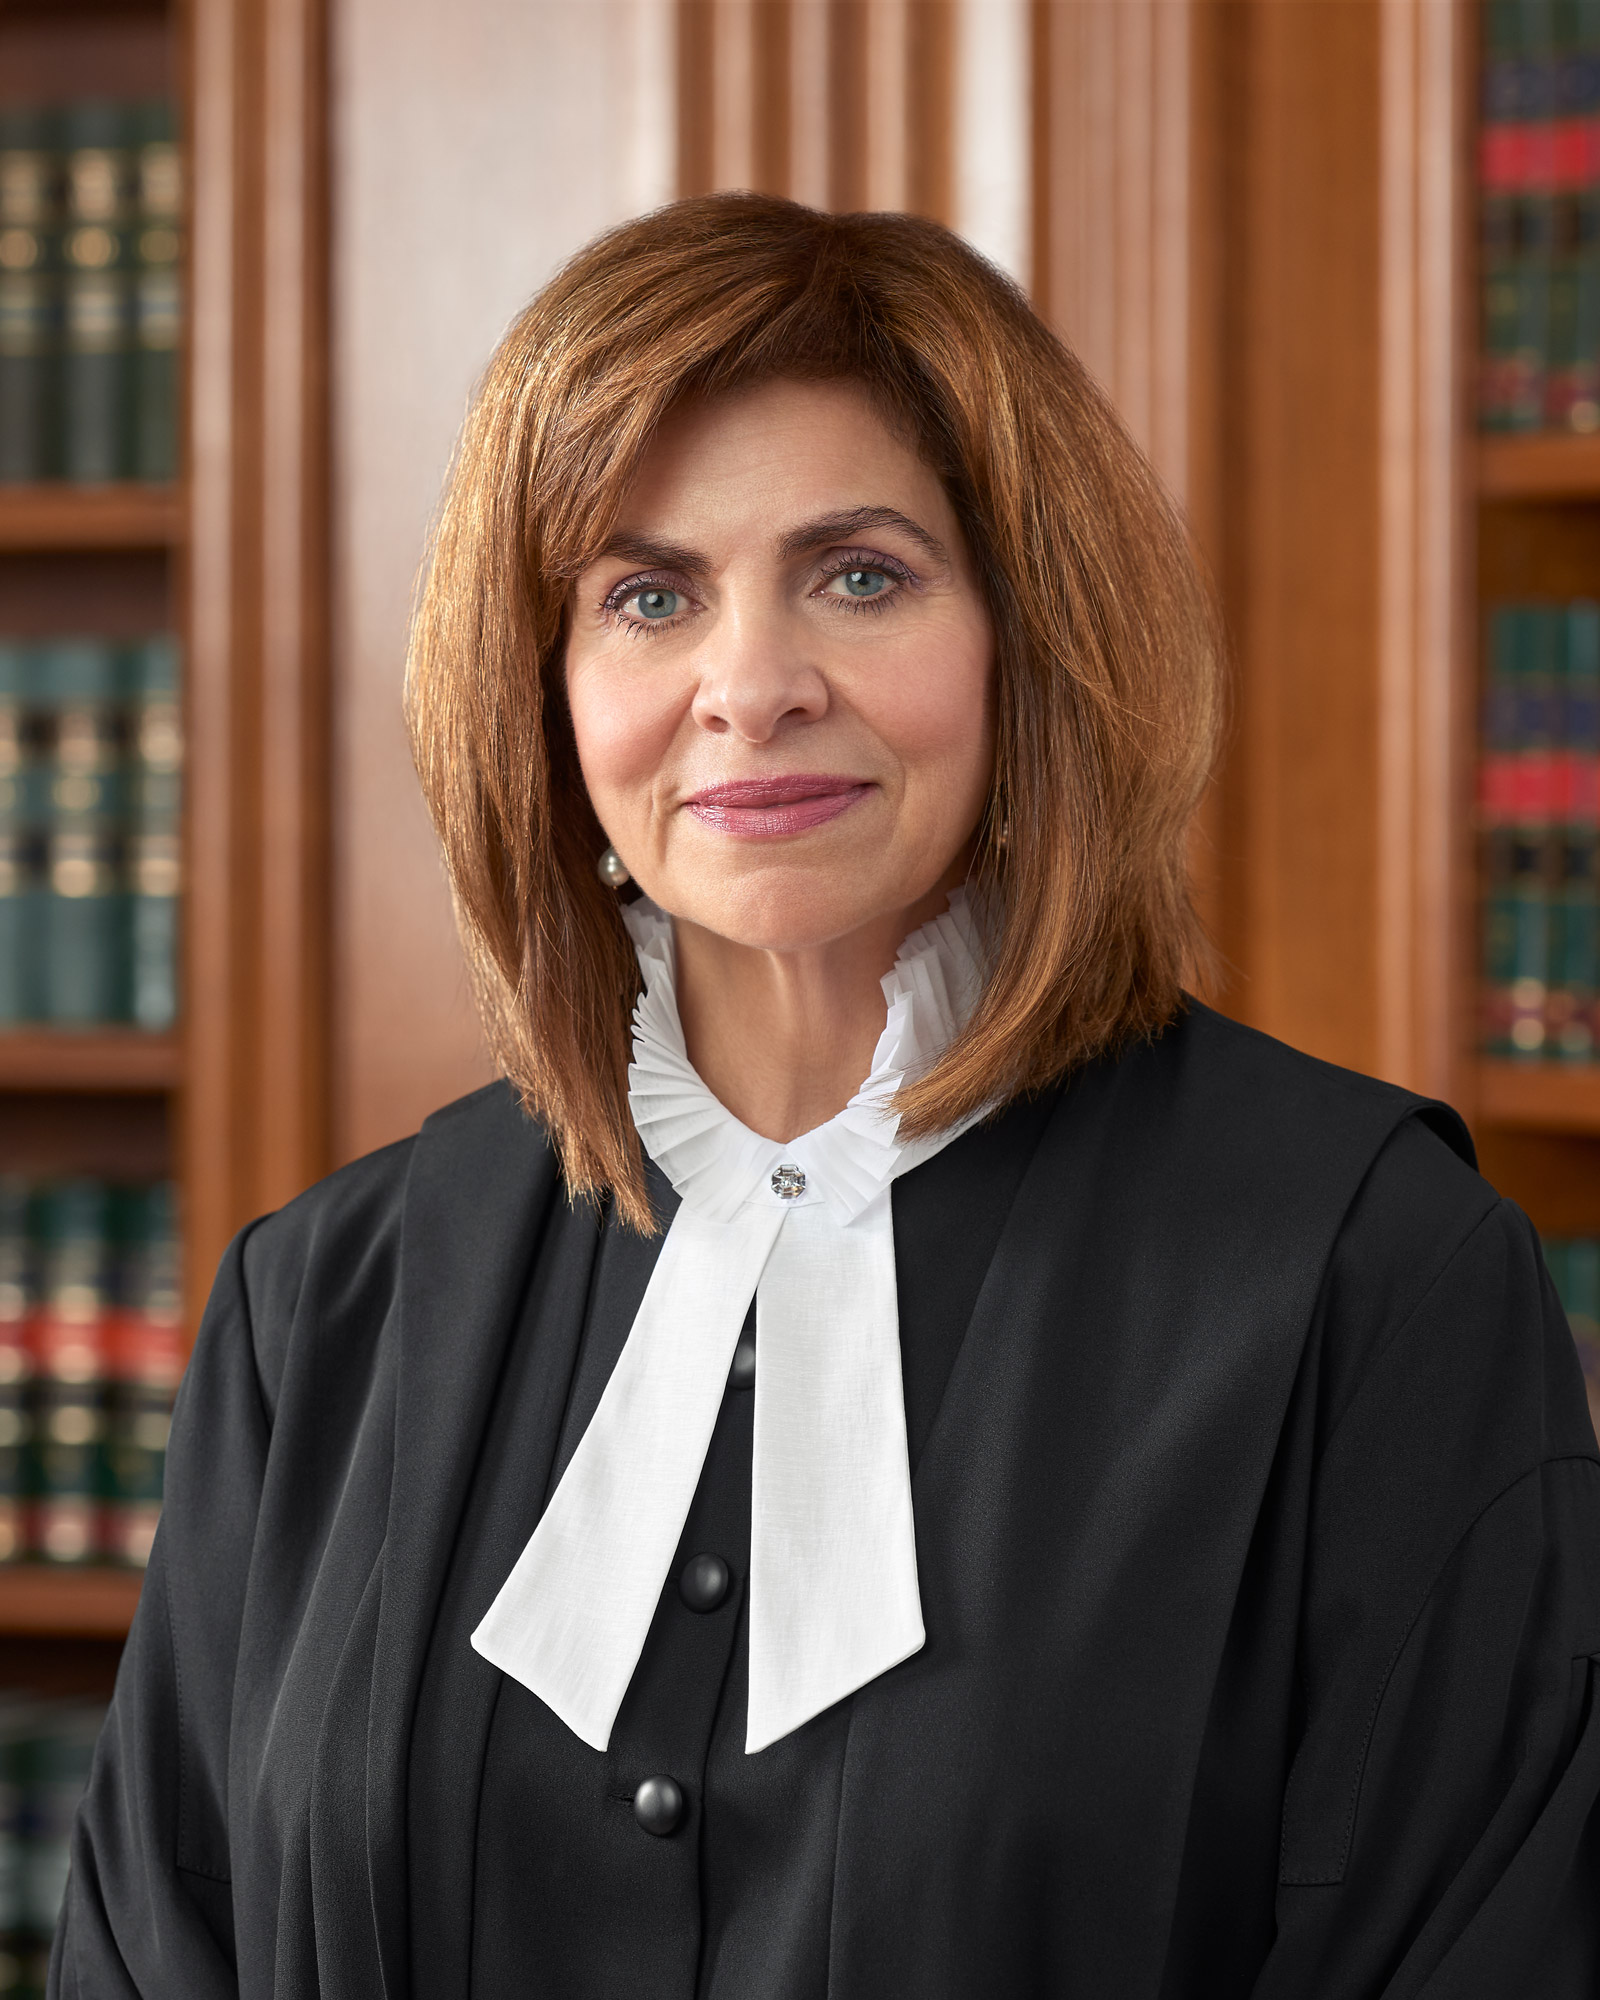 Official Portrait of Justice Karakatsanis | Supreme Court of Canada